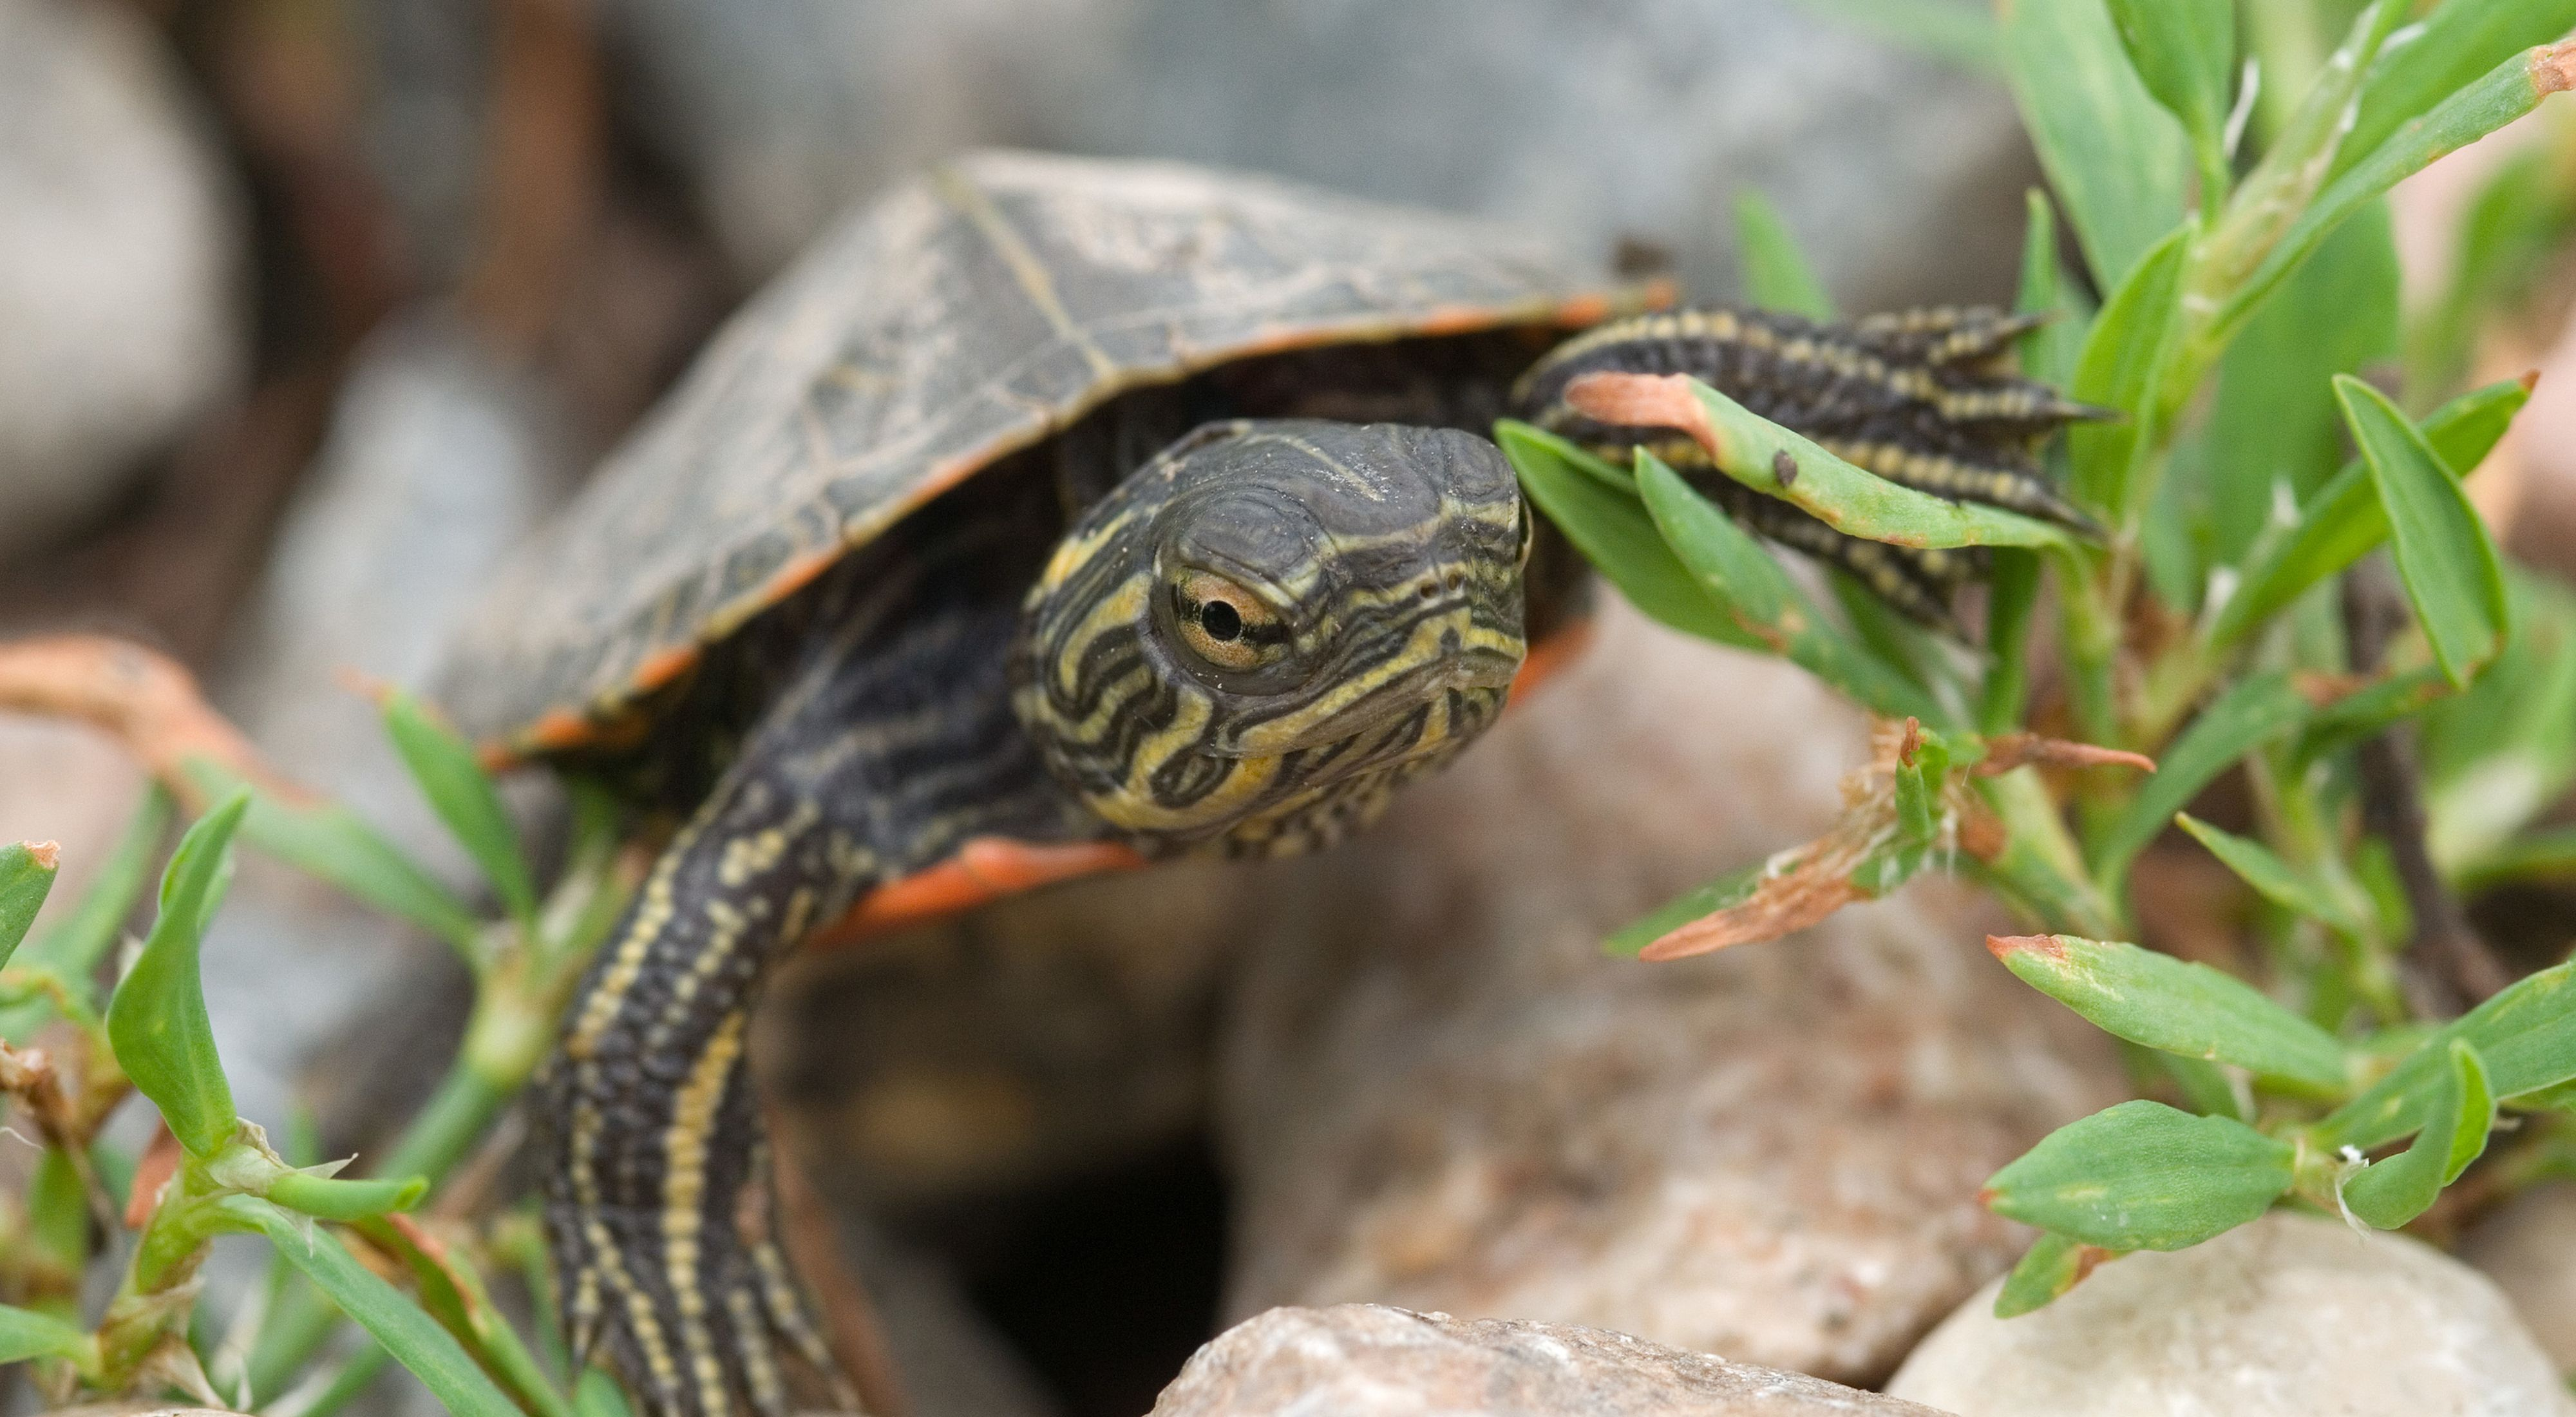 View of turtle's head, face and front legs as it walks toward viewer over rocks and through green vegetation.